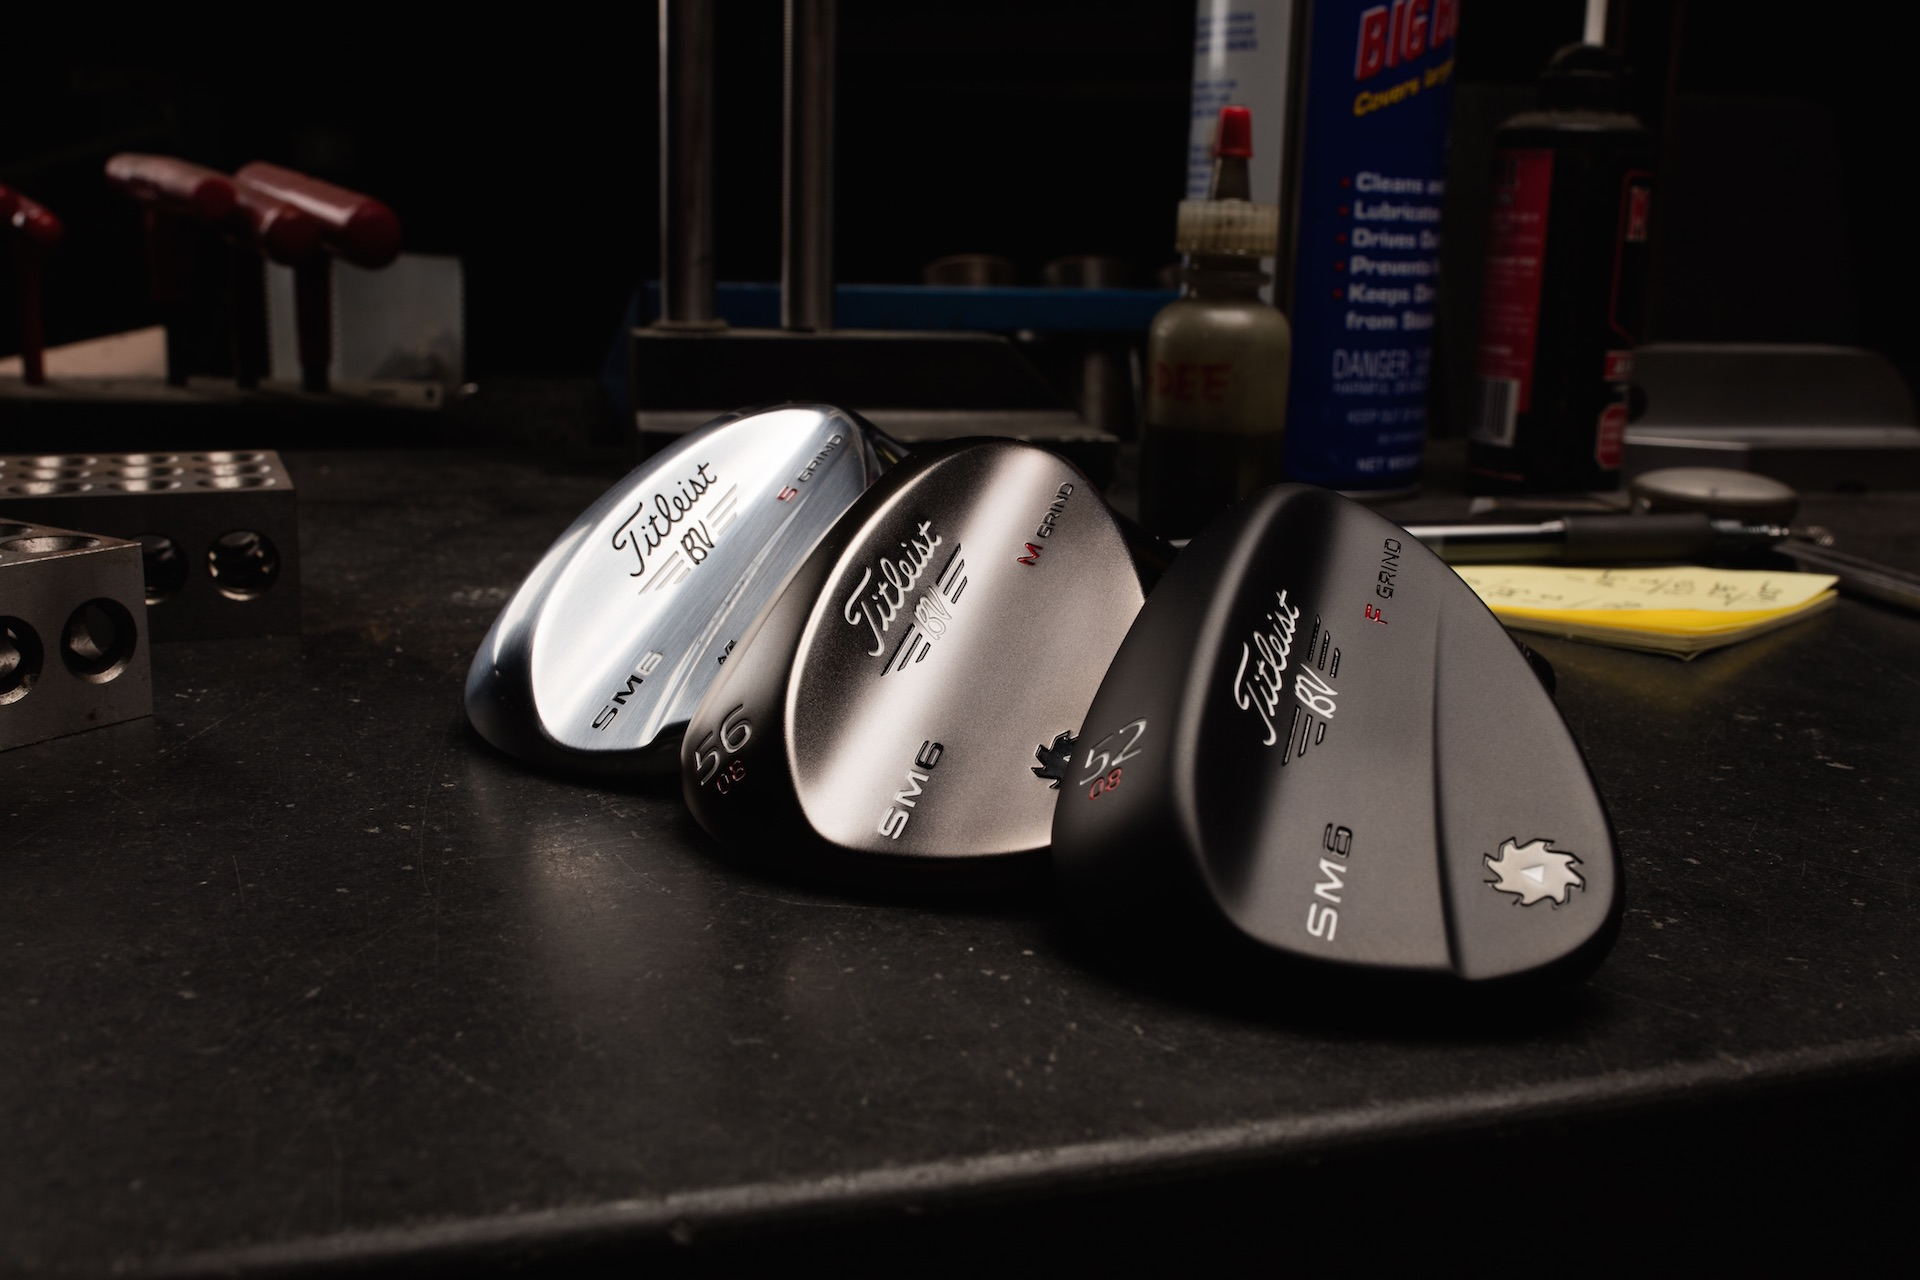 What clubs do you think Tiger and Rory should use?